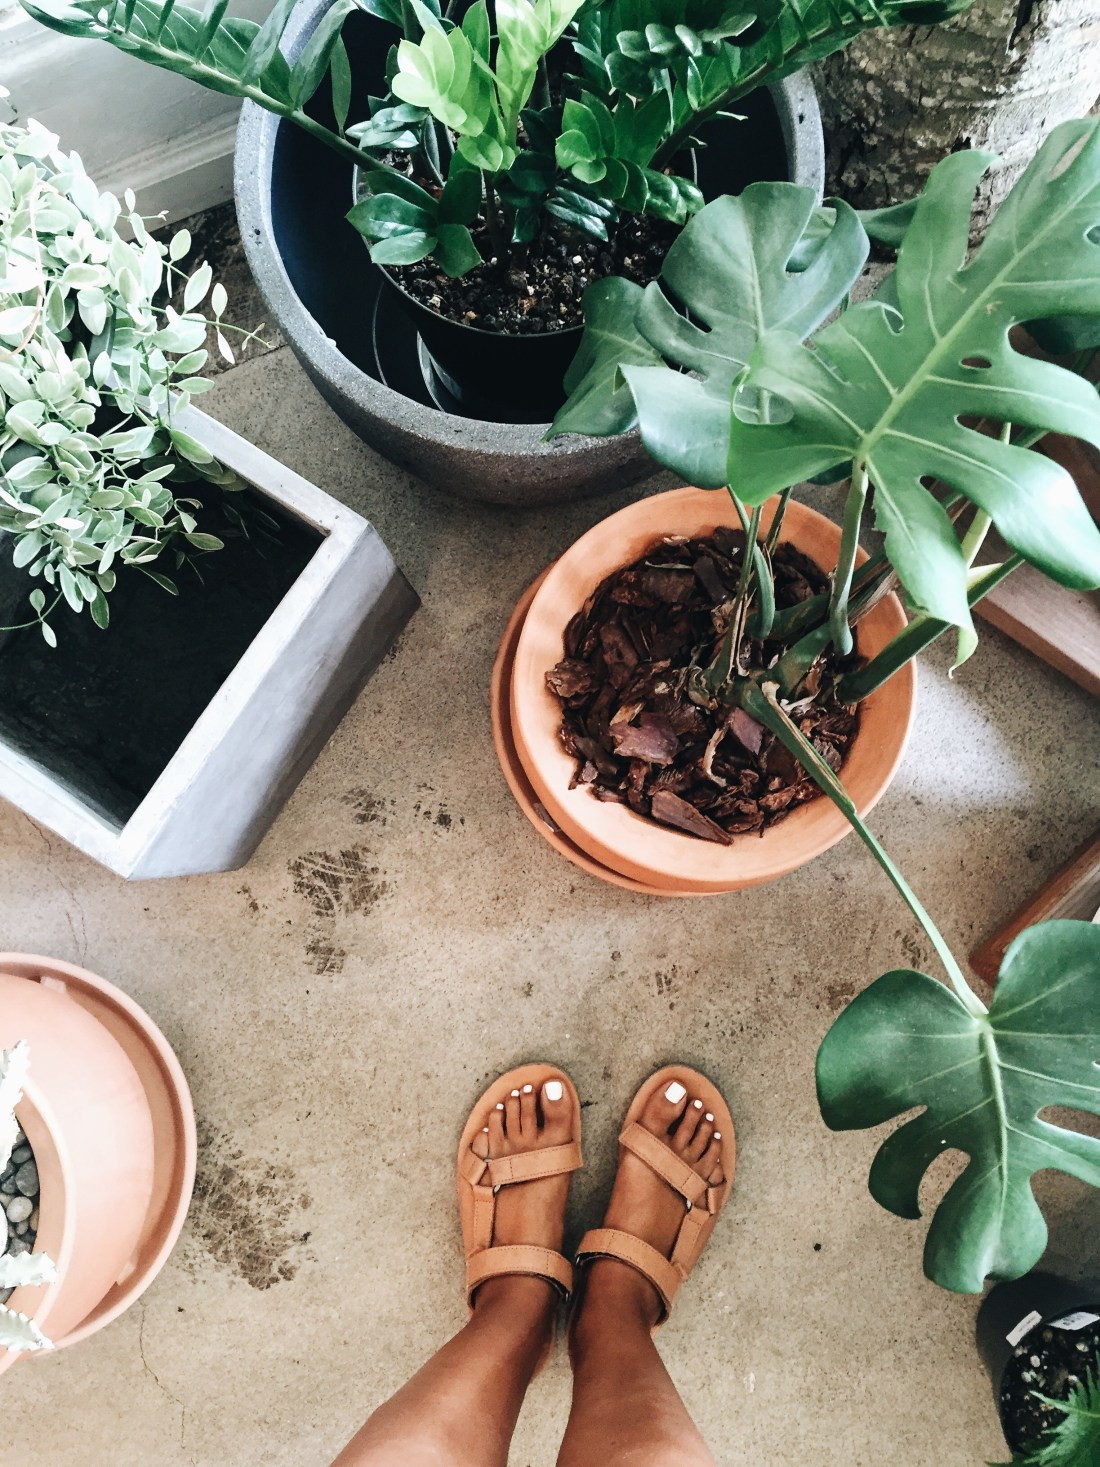 Paiko Plant Store in Honolulu | Arvo Coffee | Travel Guide To Oahu, Hawaii | Best Coffee Shops on Oahu | Coffee In Hawaii via @elanaloo + elanaloo.com